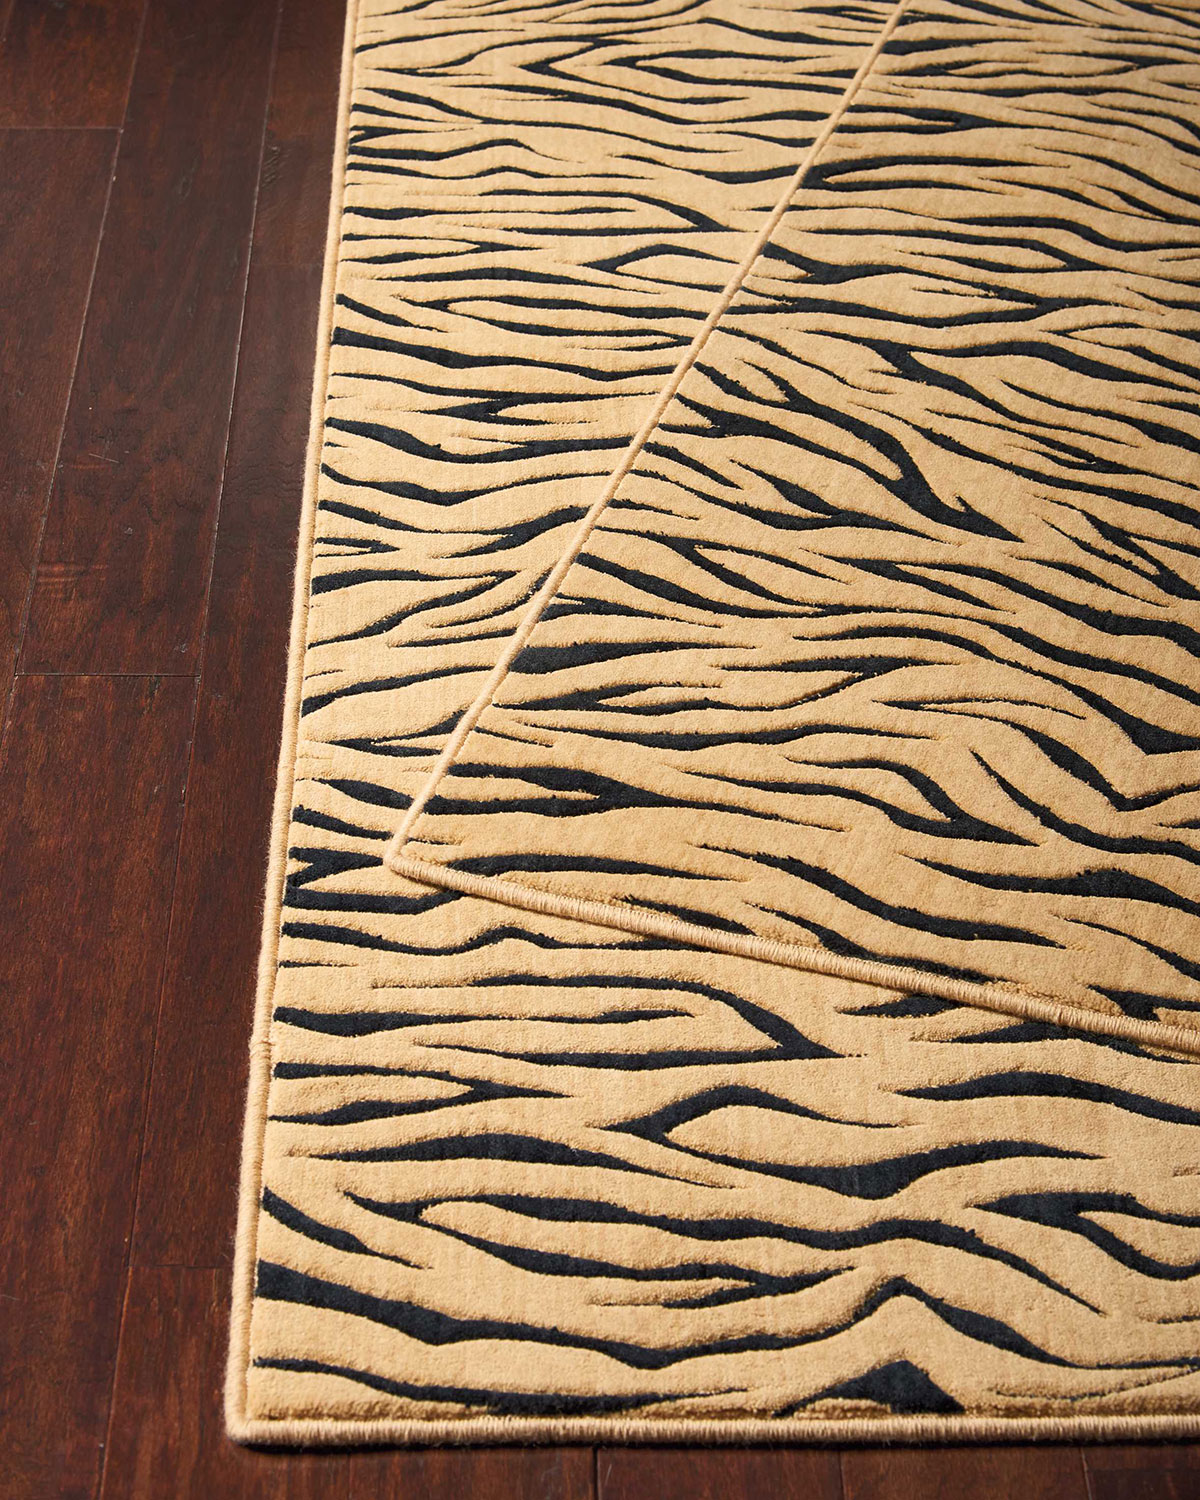 Bewitched Tiger Rug, 3' x 5' Product Image